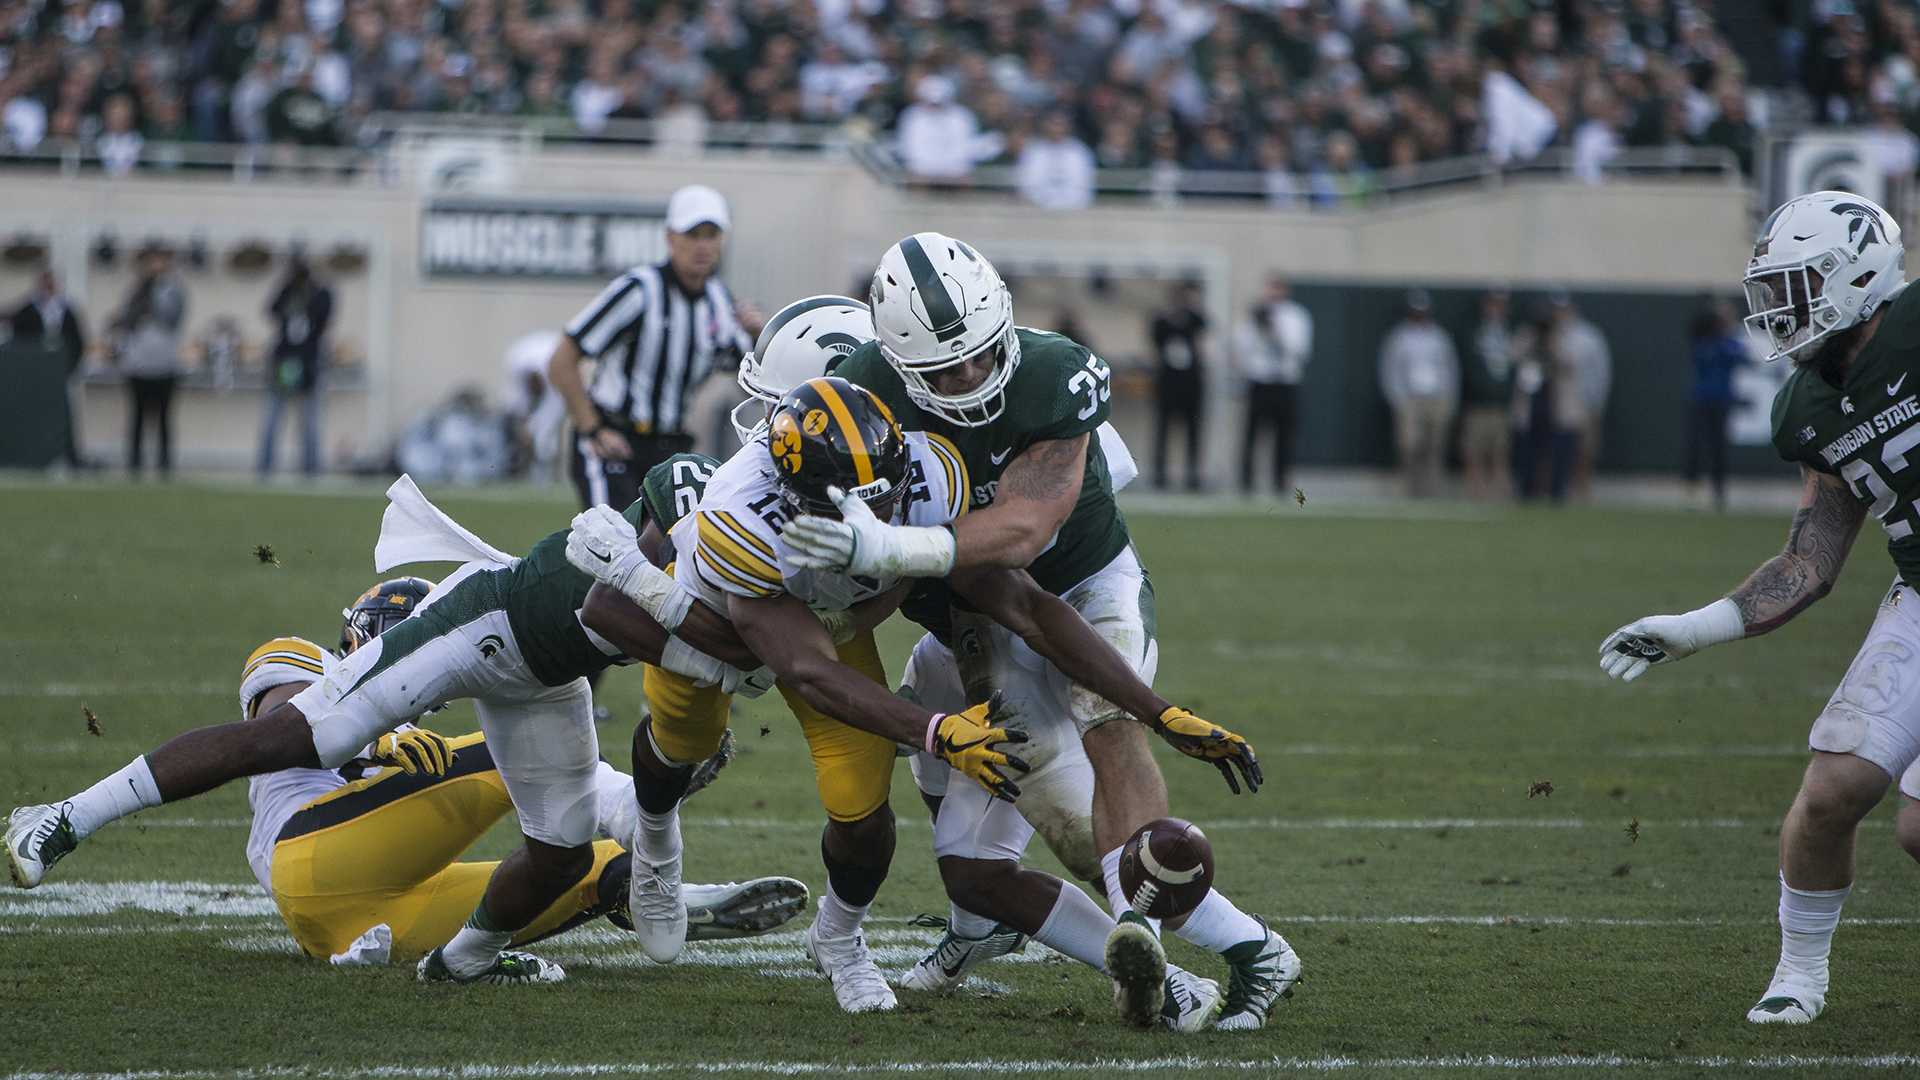 Iowa wide receiver Brandon Smith (12) attempts to recover a fumble forced by Michigan State's Joe Bachie during the game between Iowa and Michigan State at Spartan Stadium on Saturday, Sept. 30, 2017. The Hawkeyes fell to the Spartans with a final score of 10-17. (Ben Smith/The Daily Iowan)